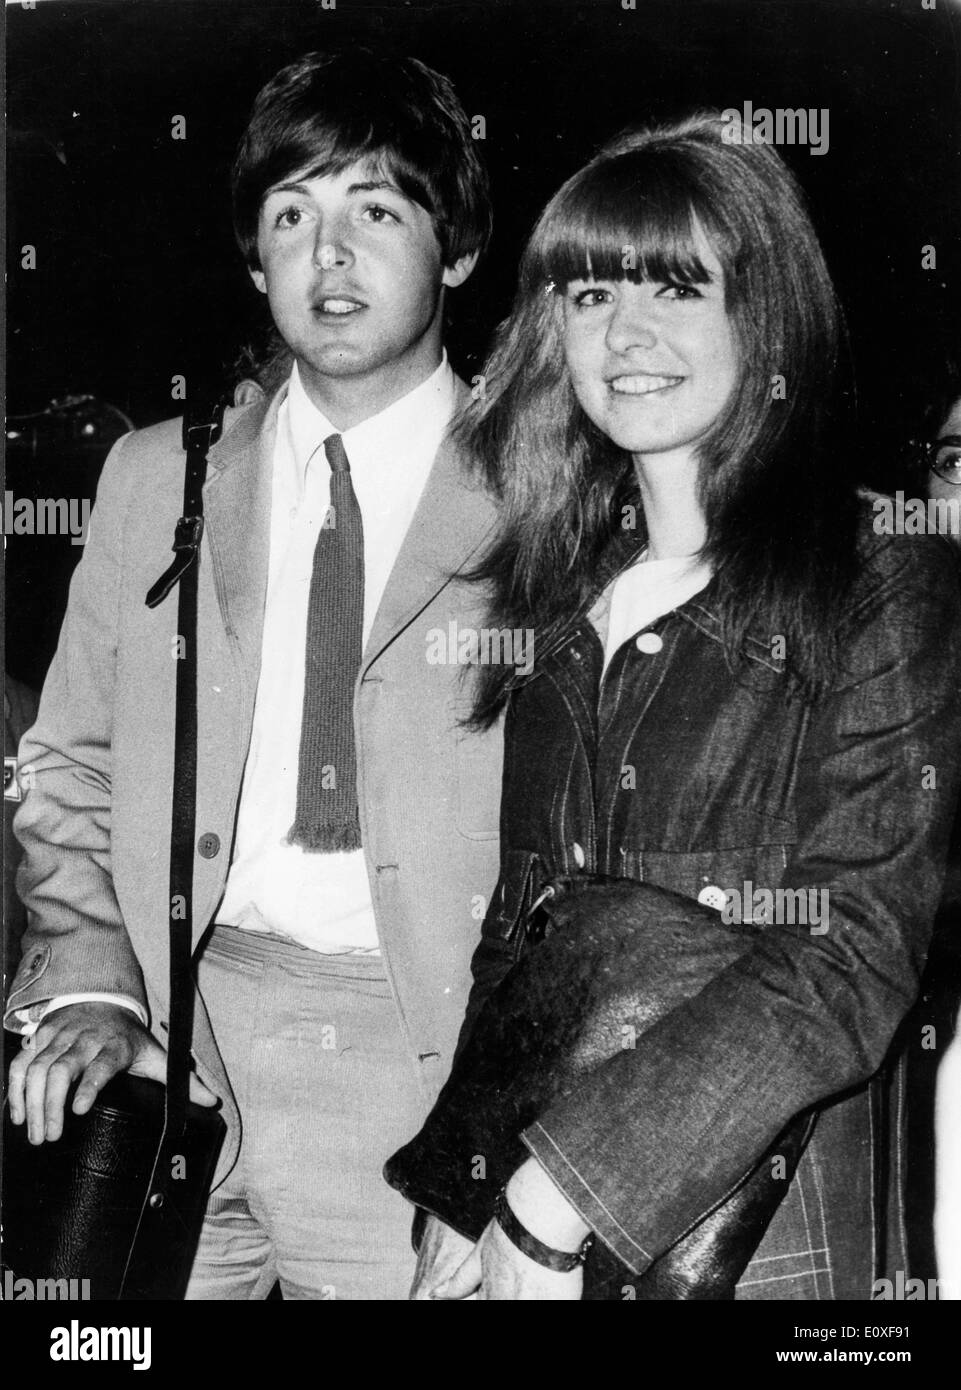 Paul McCartney Announces Engagement To Jane Asher